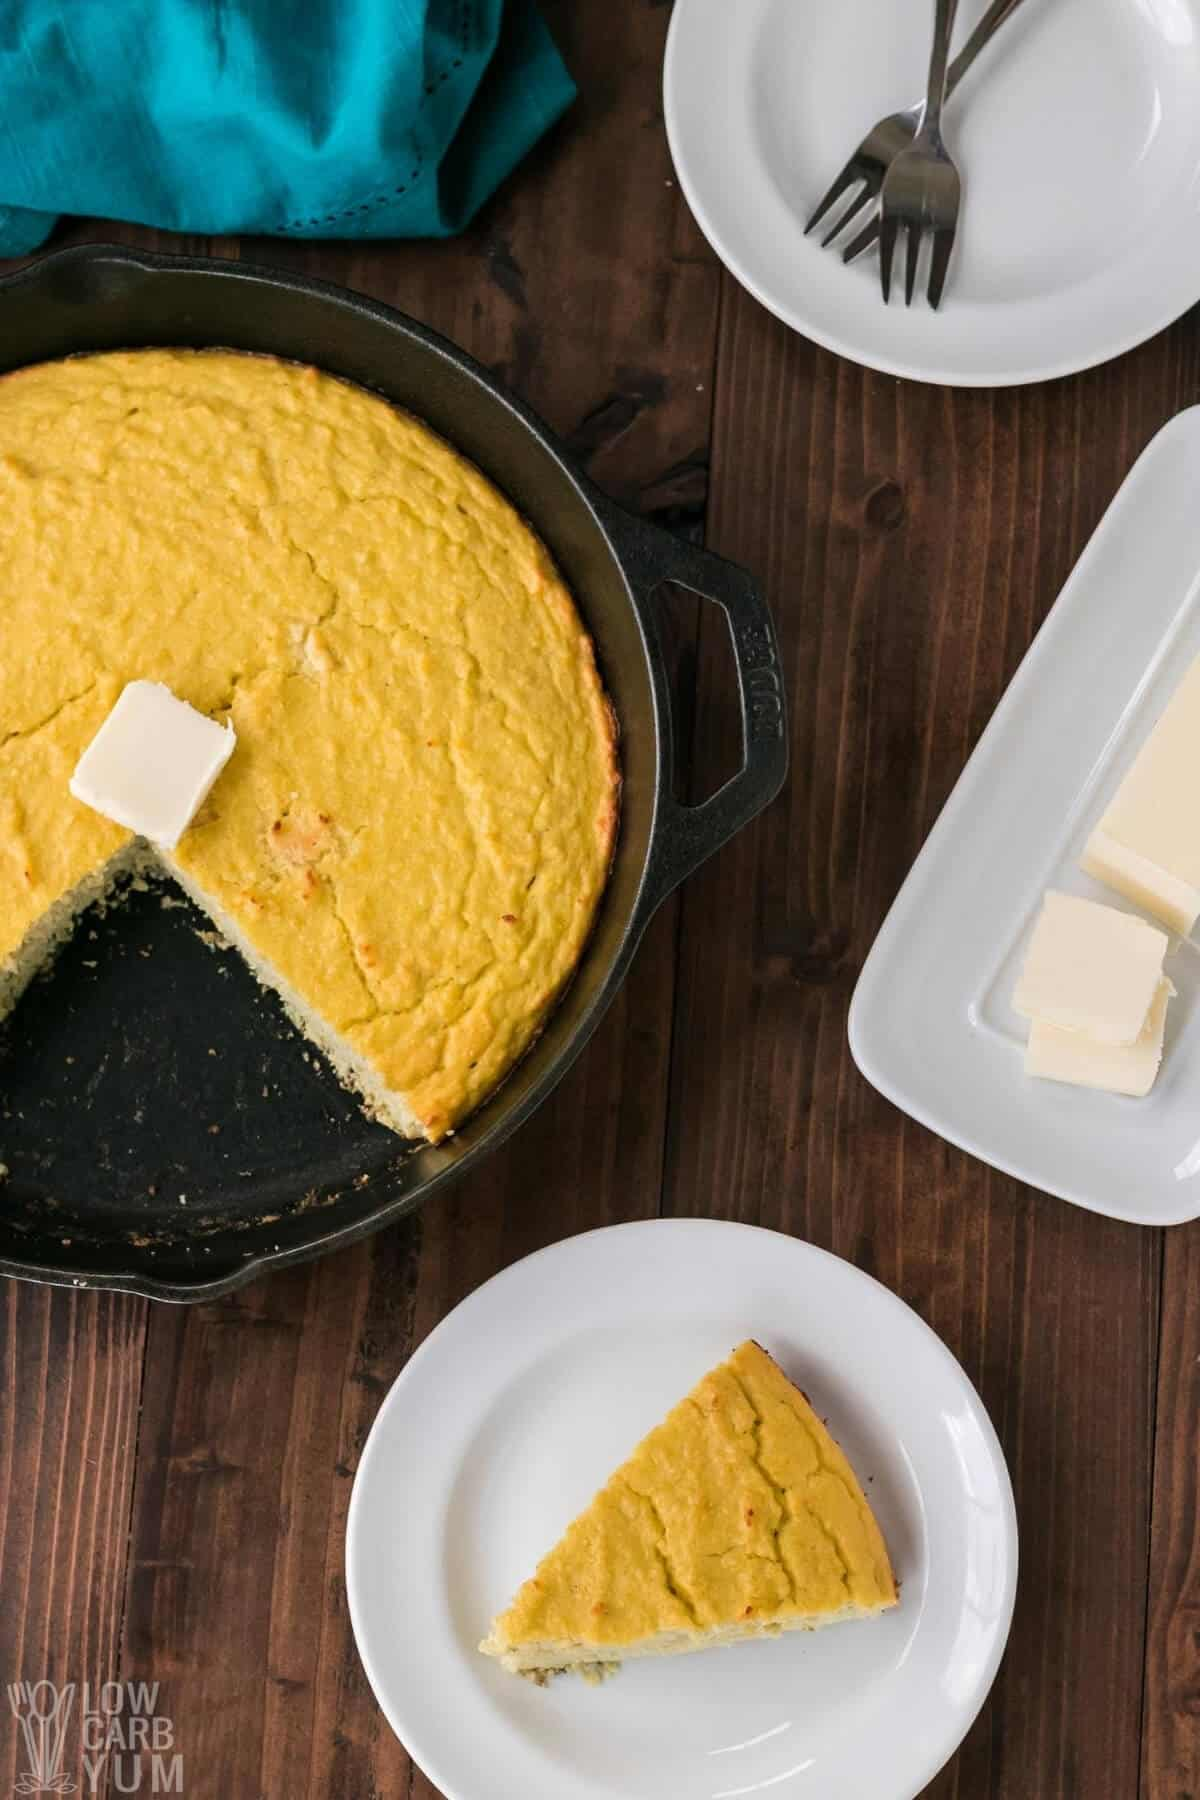 slice of cornbread on plate with butter